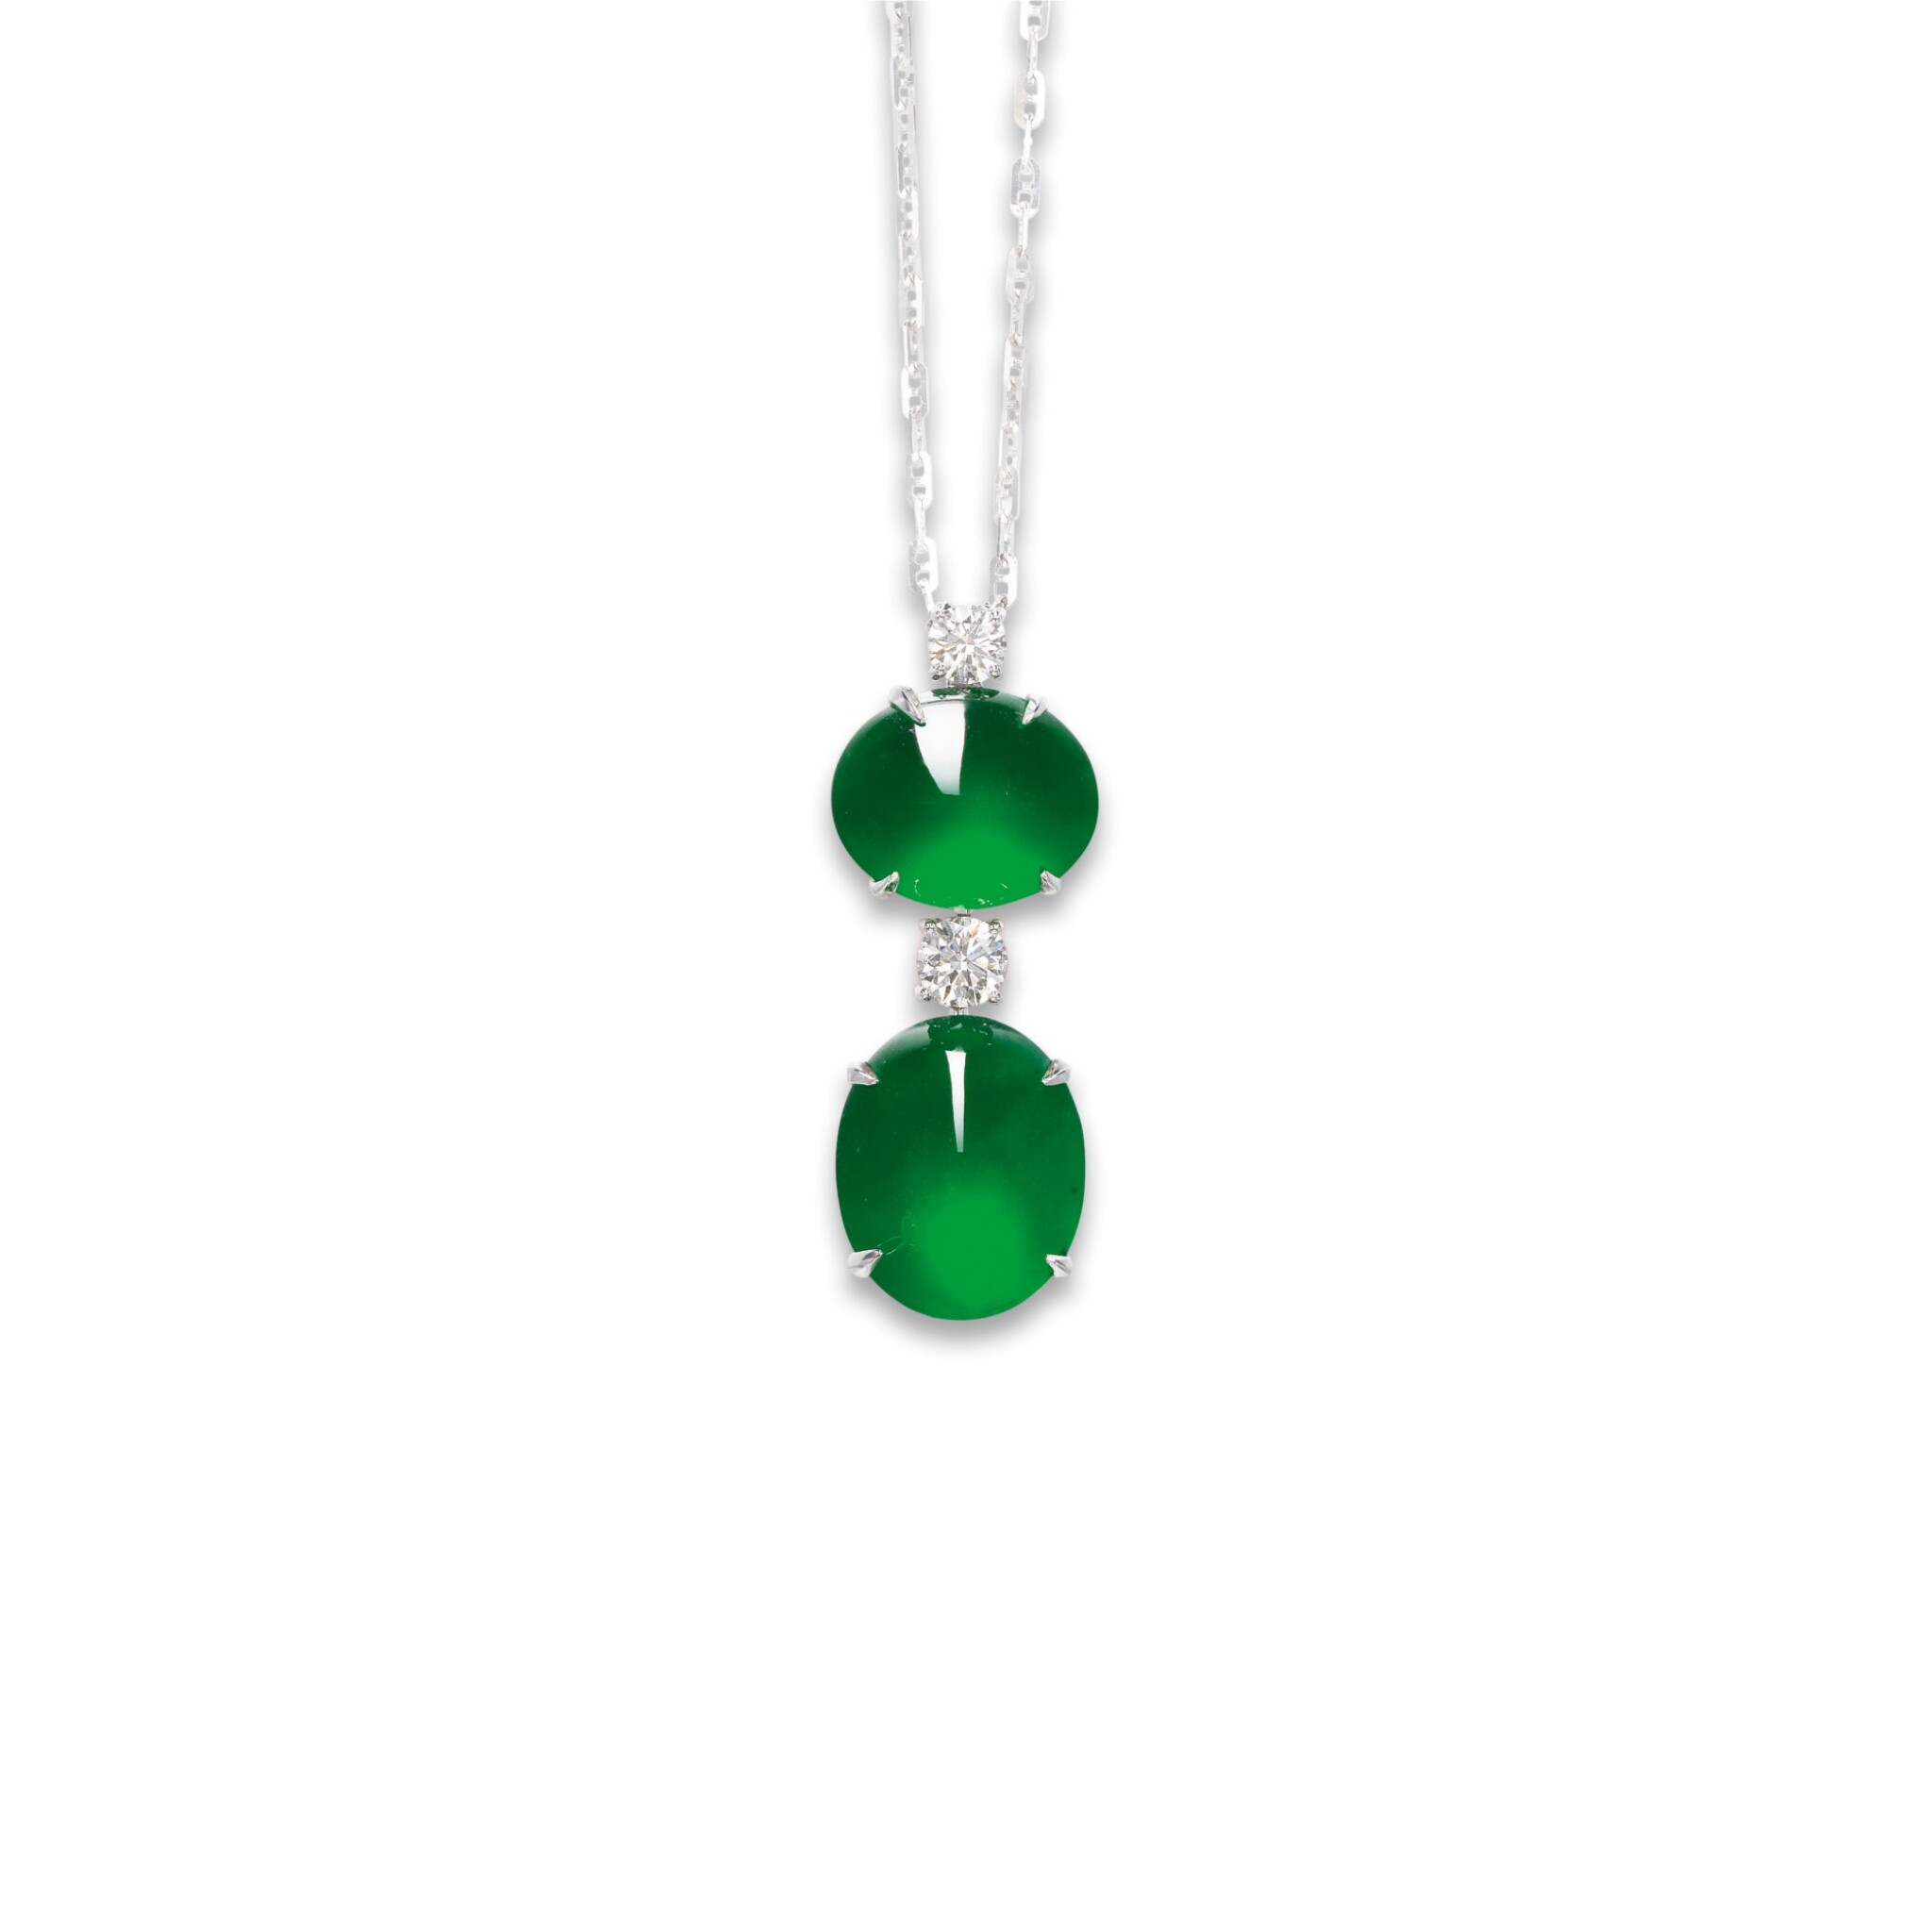 View full screen - View 1 of Lot 1765. JADEITE AND DIAMOND PENDENT NECKLACE  天然「帝王綠」翡翠 配 鑽石 項鏈.